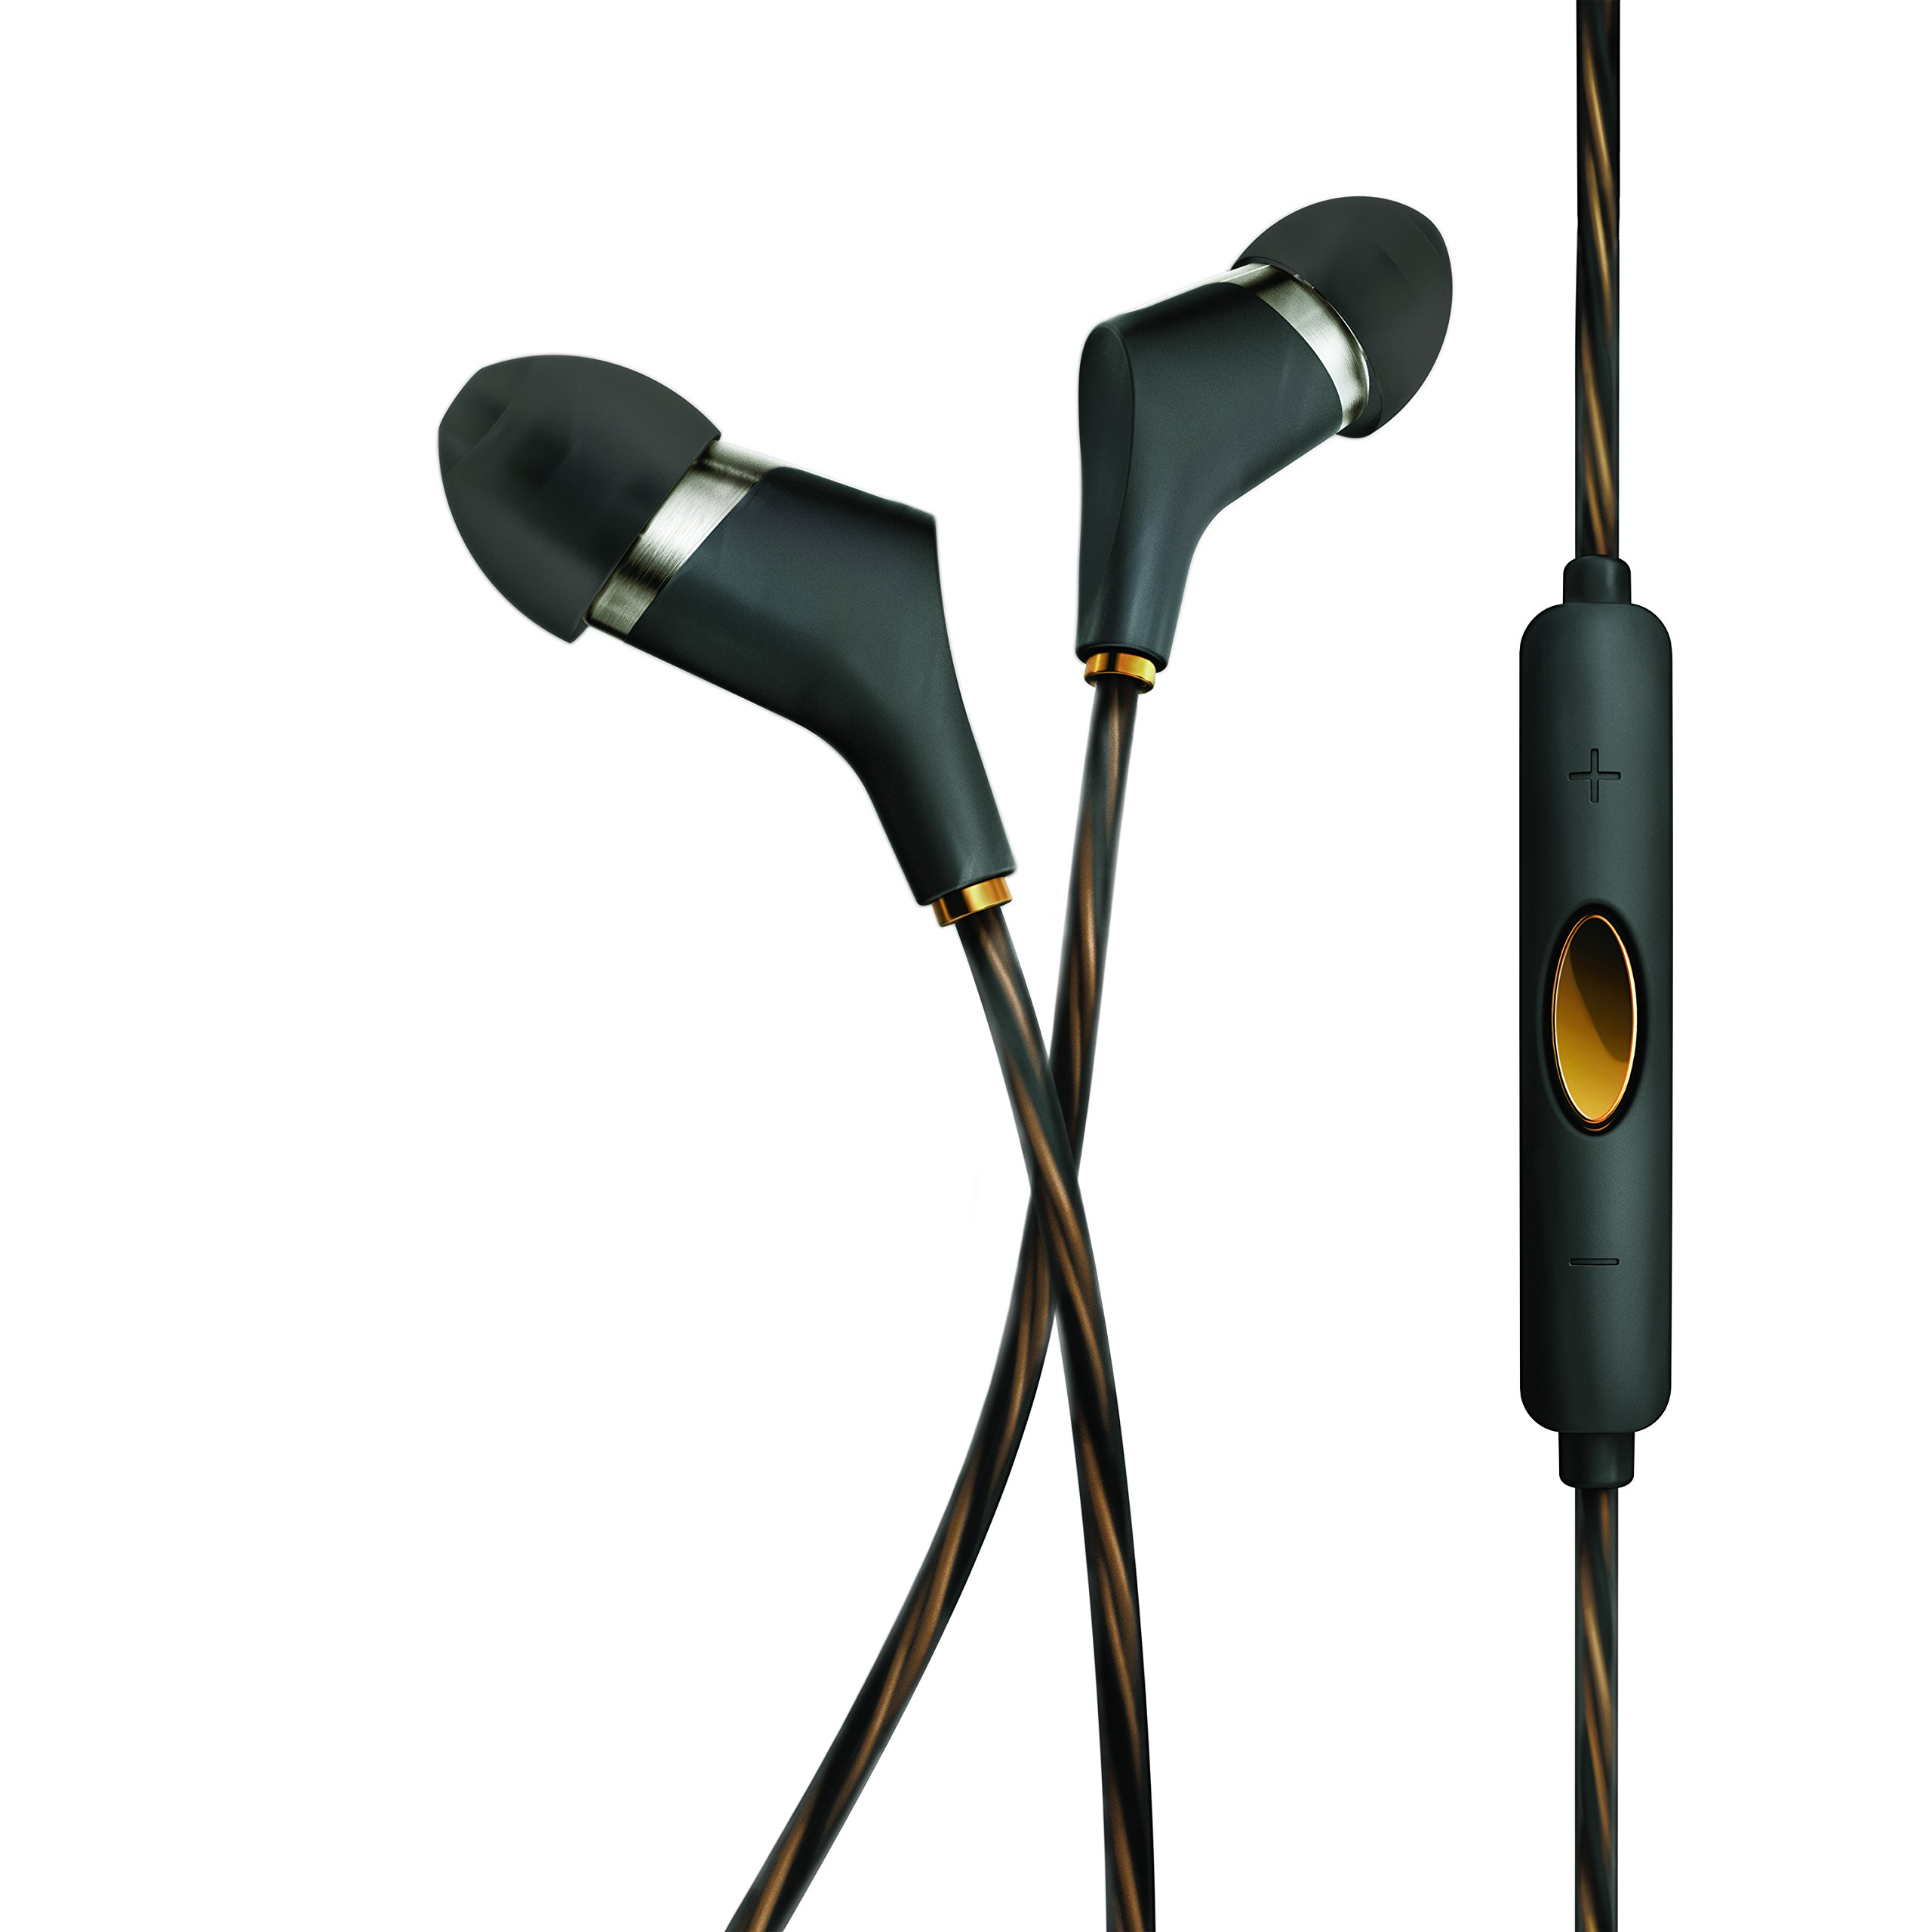 Klipsch Reference X6i In-Ear Headphones With KG-723 Full-Range Balanced Armature Drivers by Klipsch